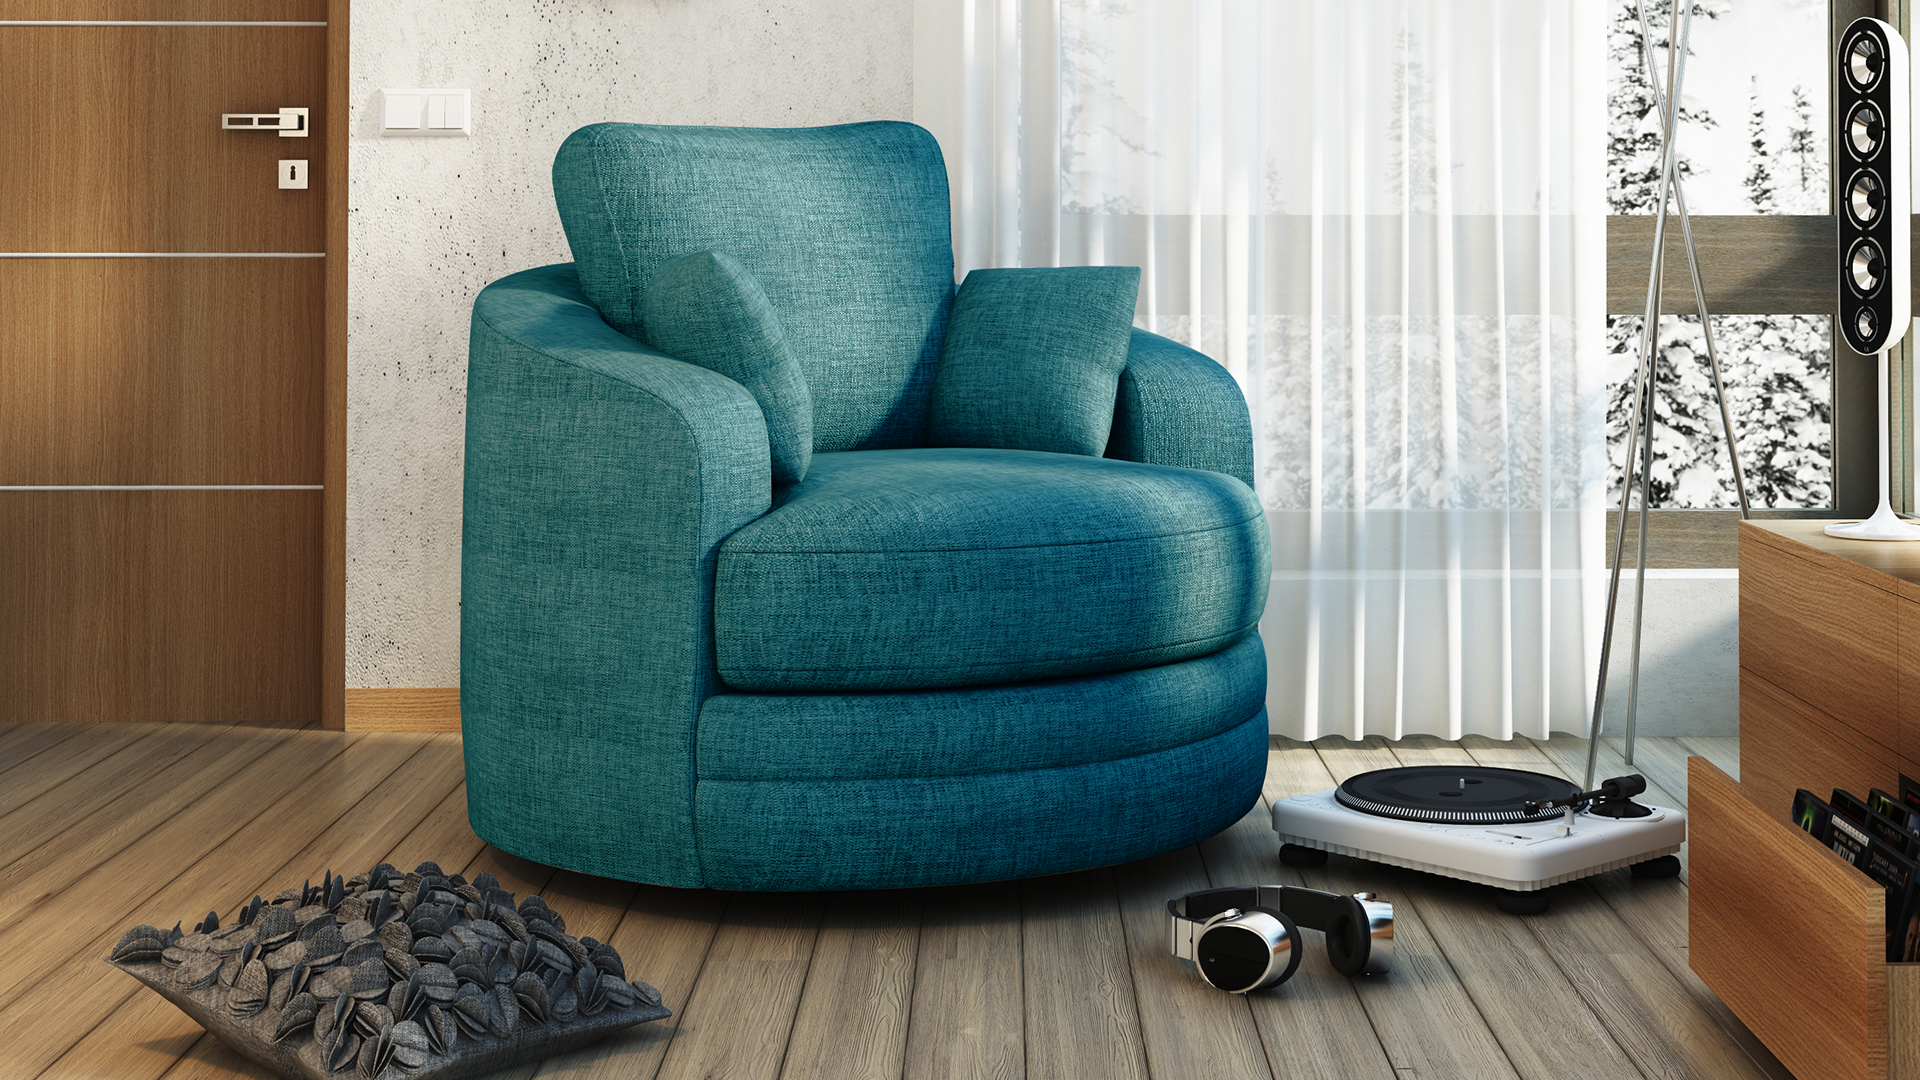 fauteuil rond pivotant tissu bleu85 buckie salon mobiliermoss le blog mobilier moss. Black Bedroom Furniture Sets. Home Design Ideas